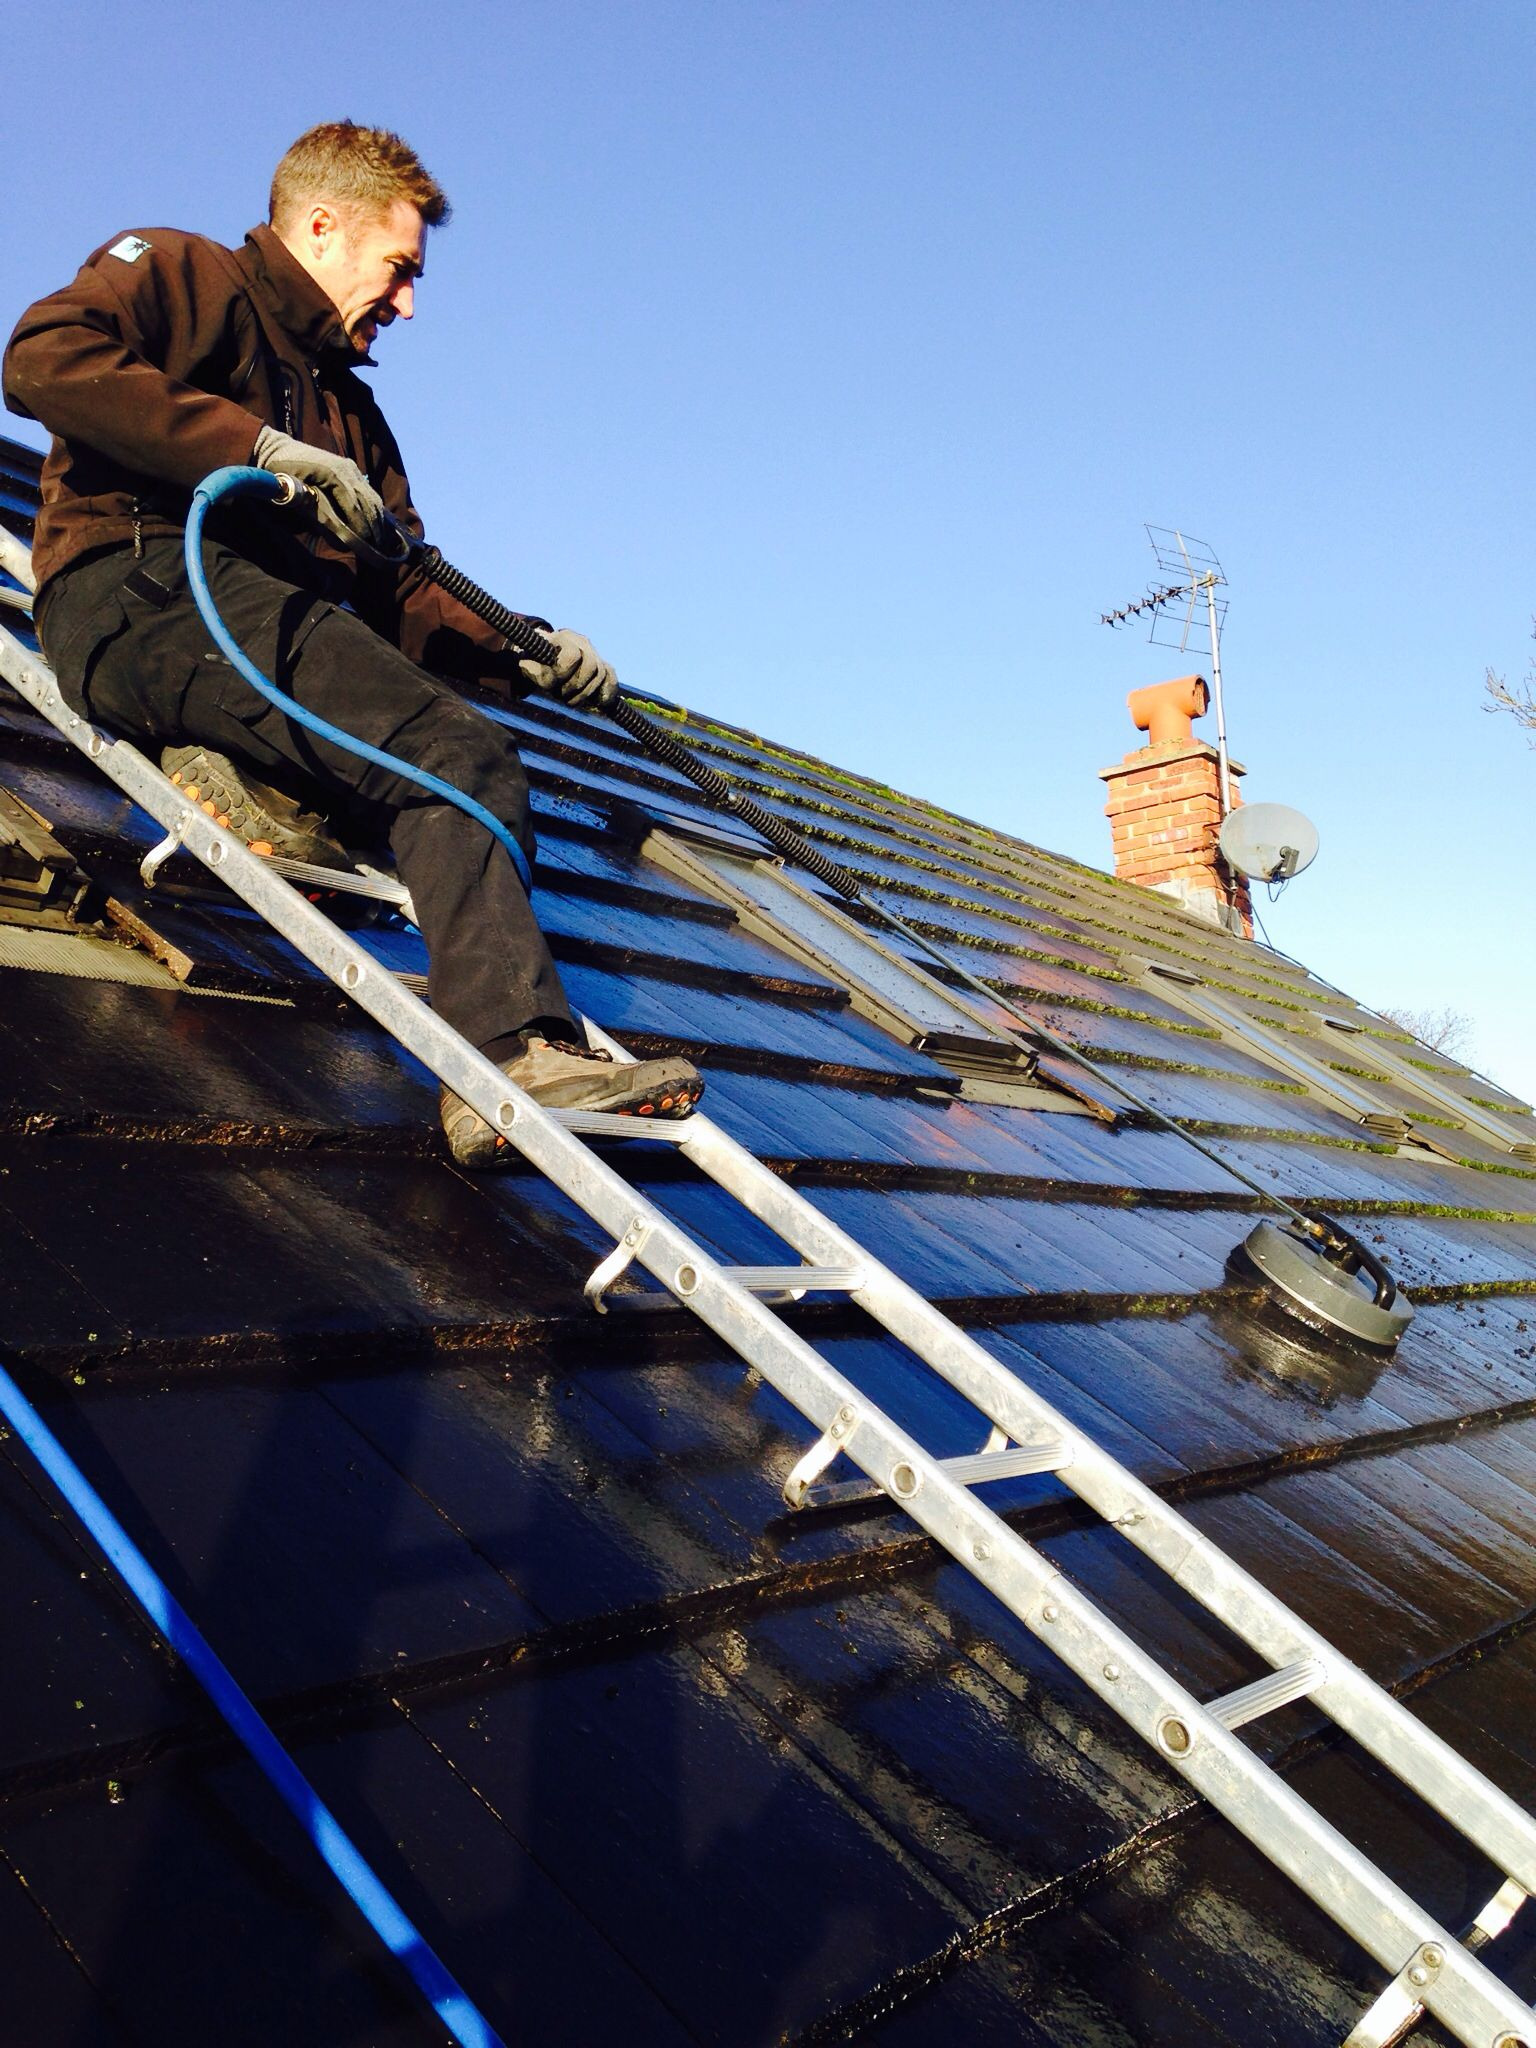 Roof cleaning using a 12 inch surface cleaner | Roof